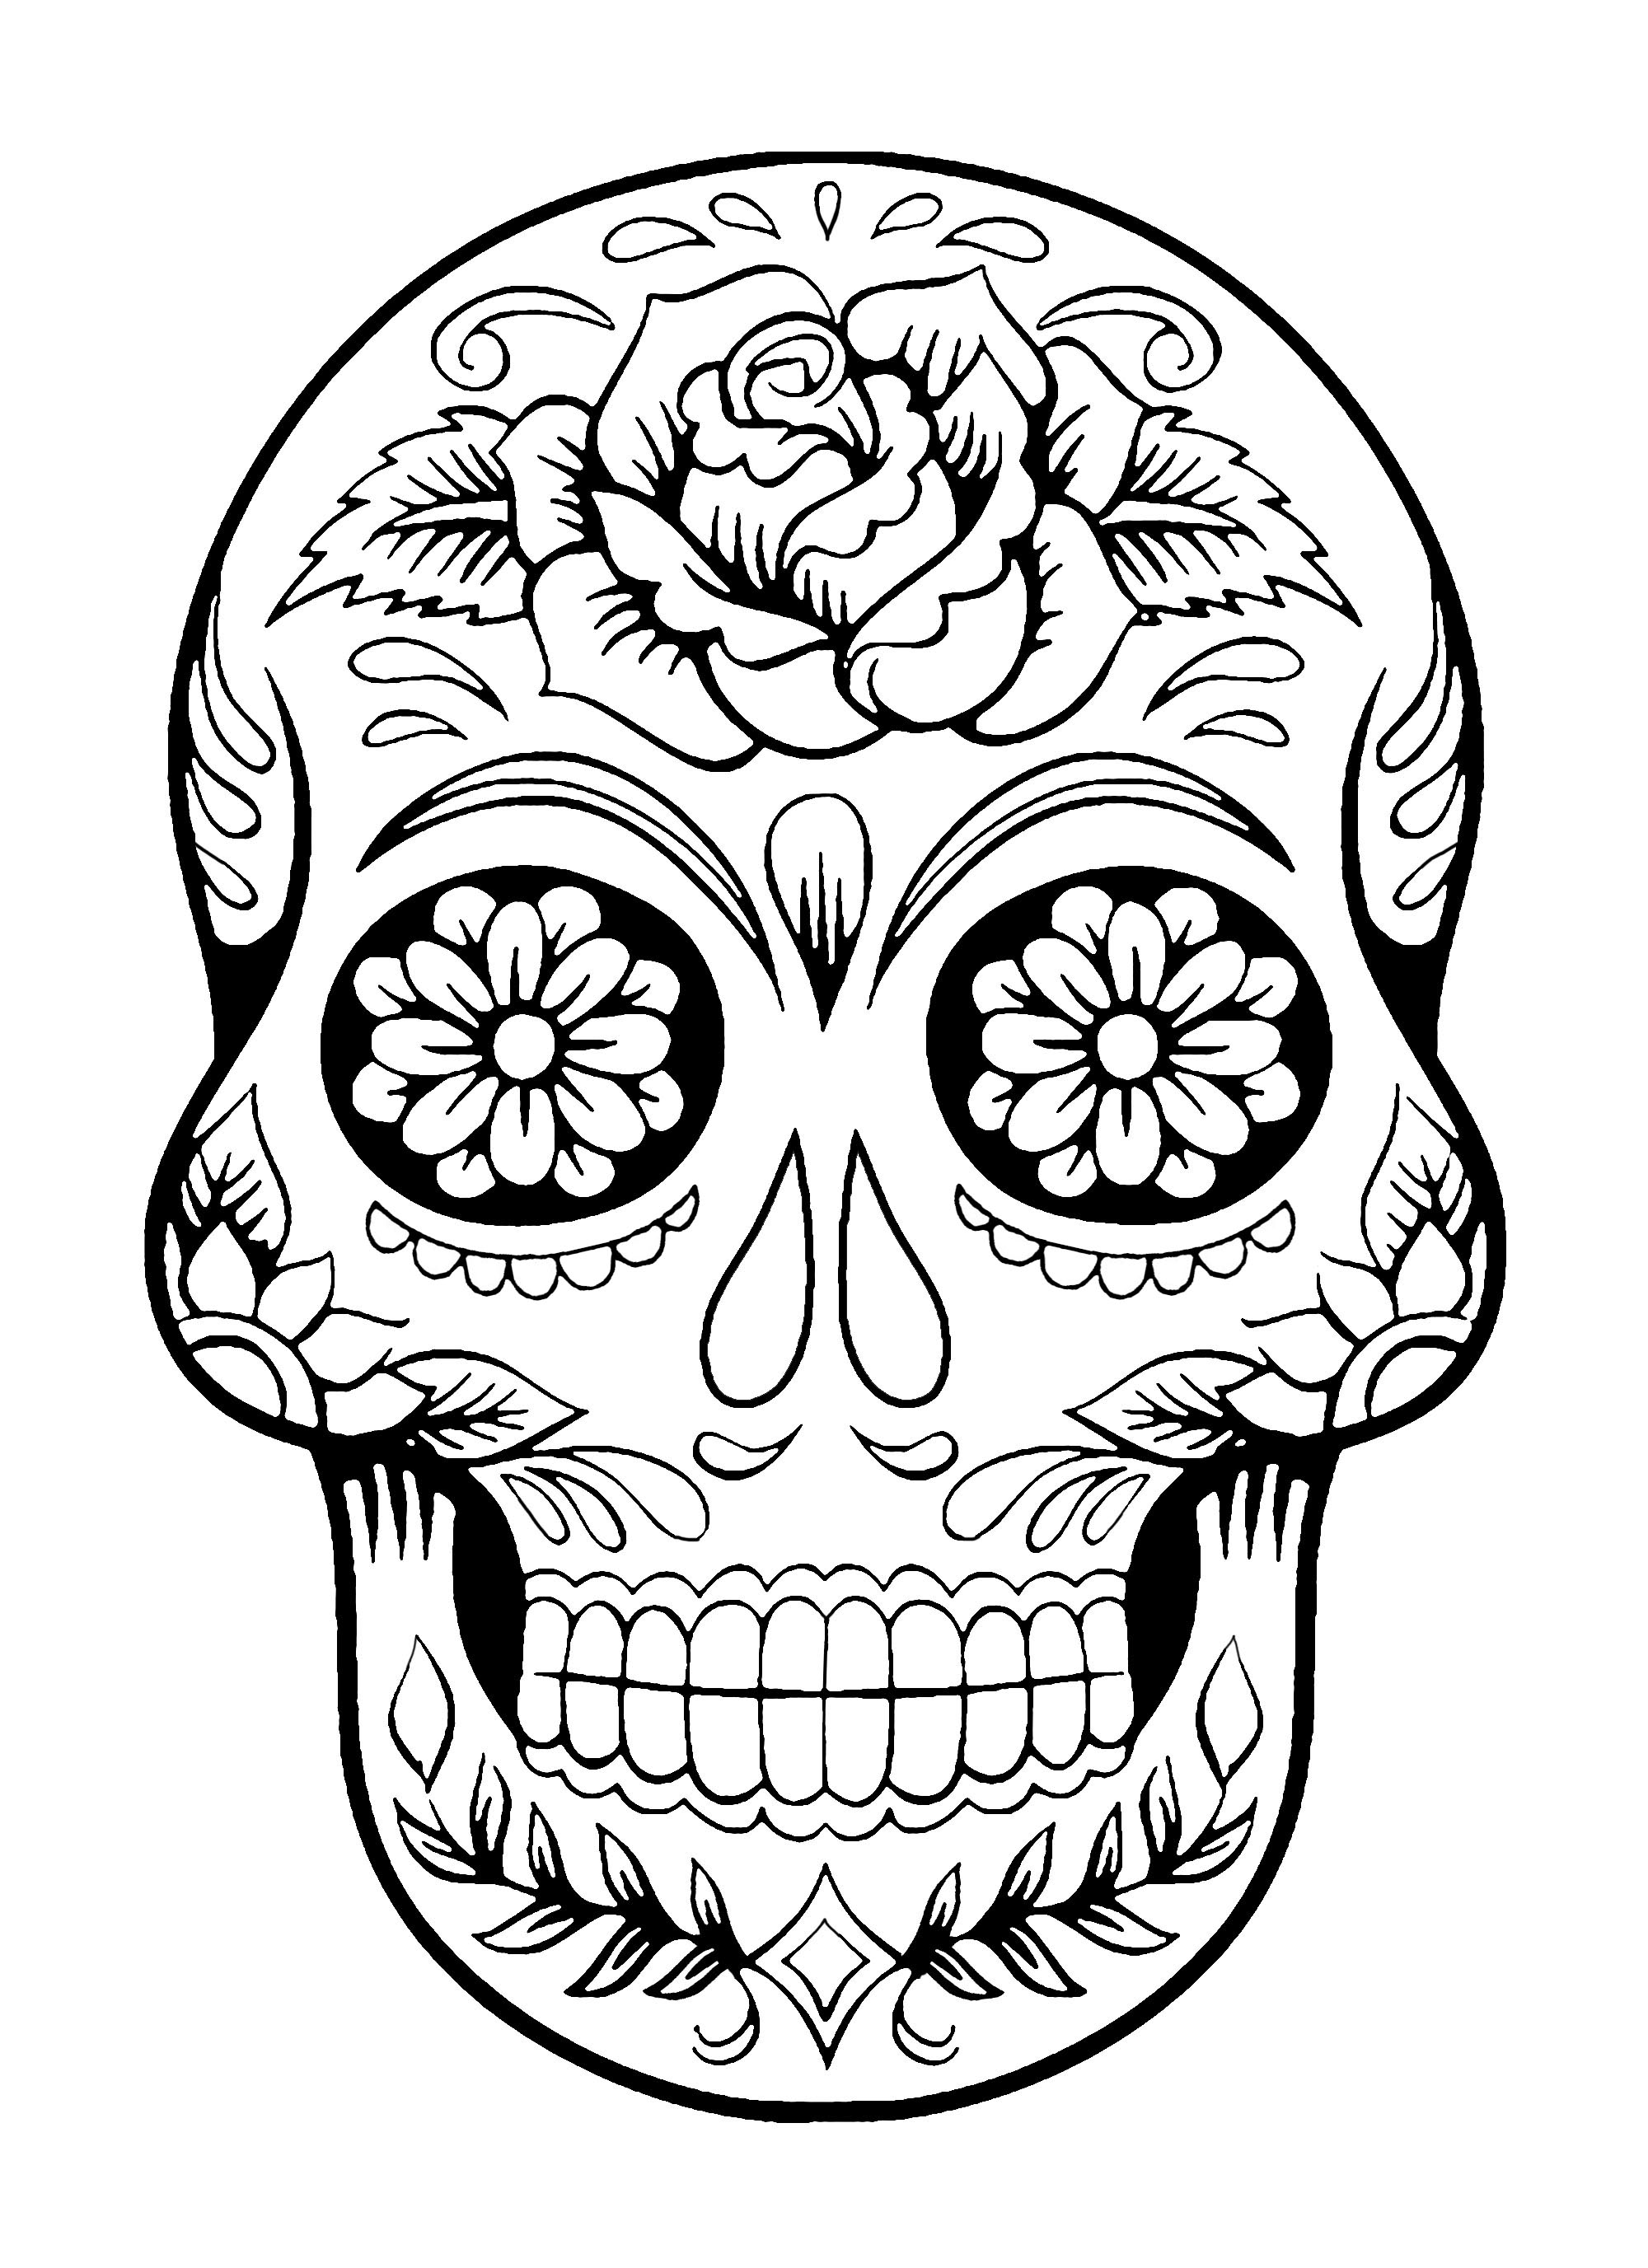 coloring printable day of the dead free printable day of the dead coloring pages best dead the of day coloring printable